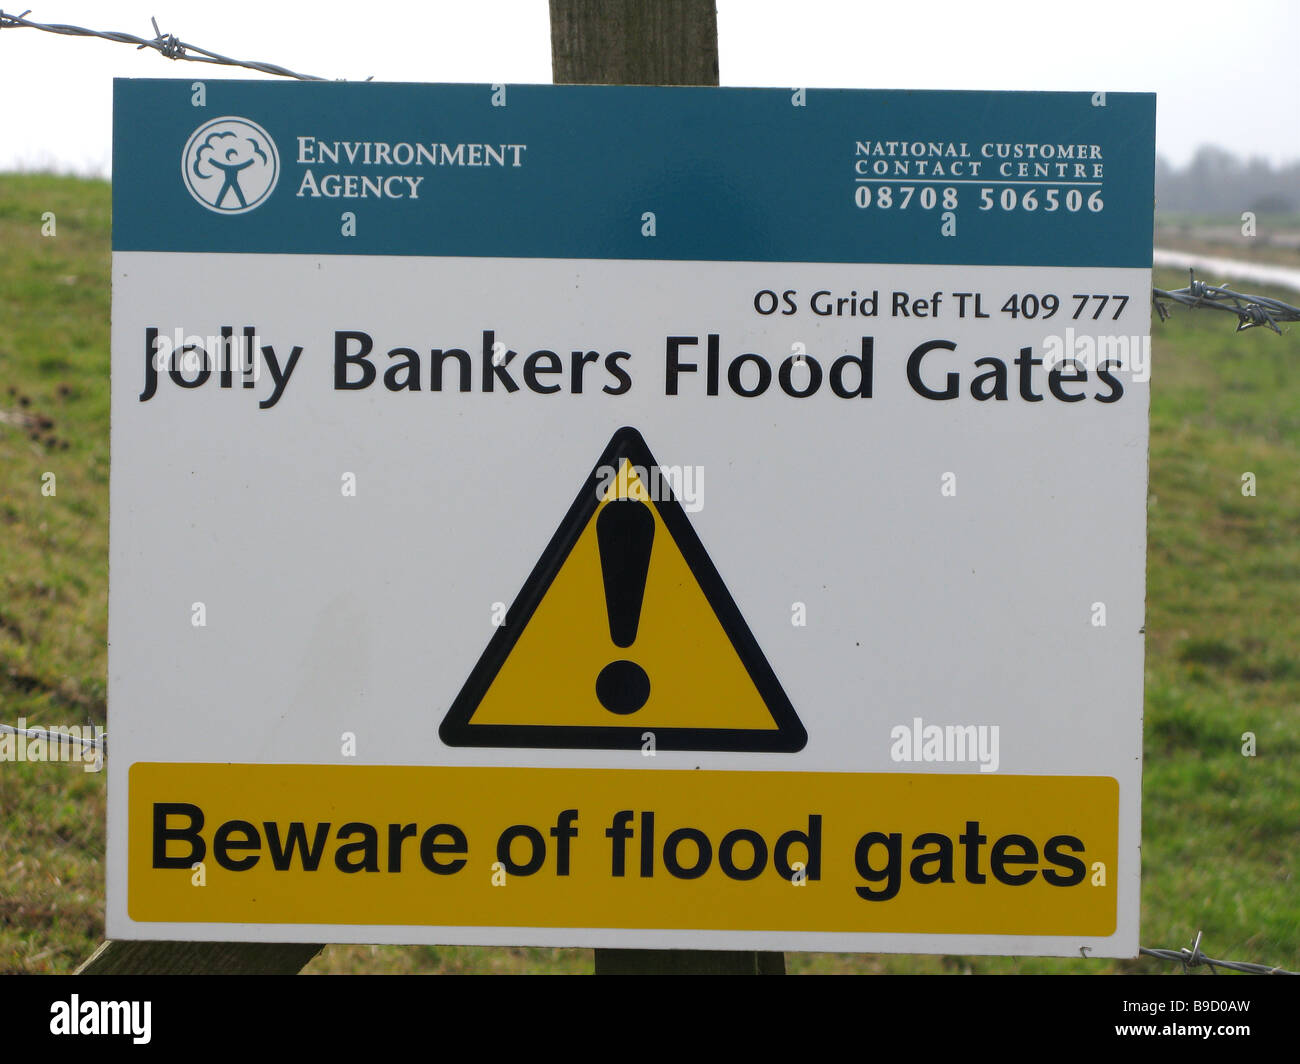 'Jolly Bankers Flood Gates' - Stock Image